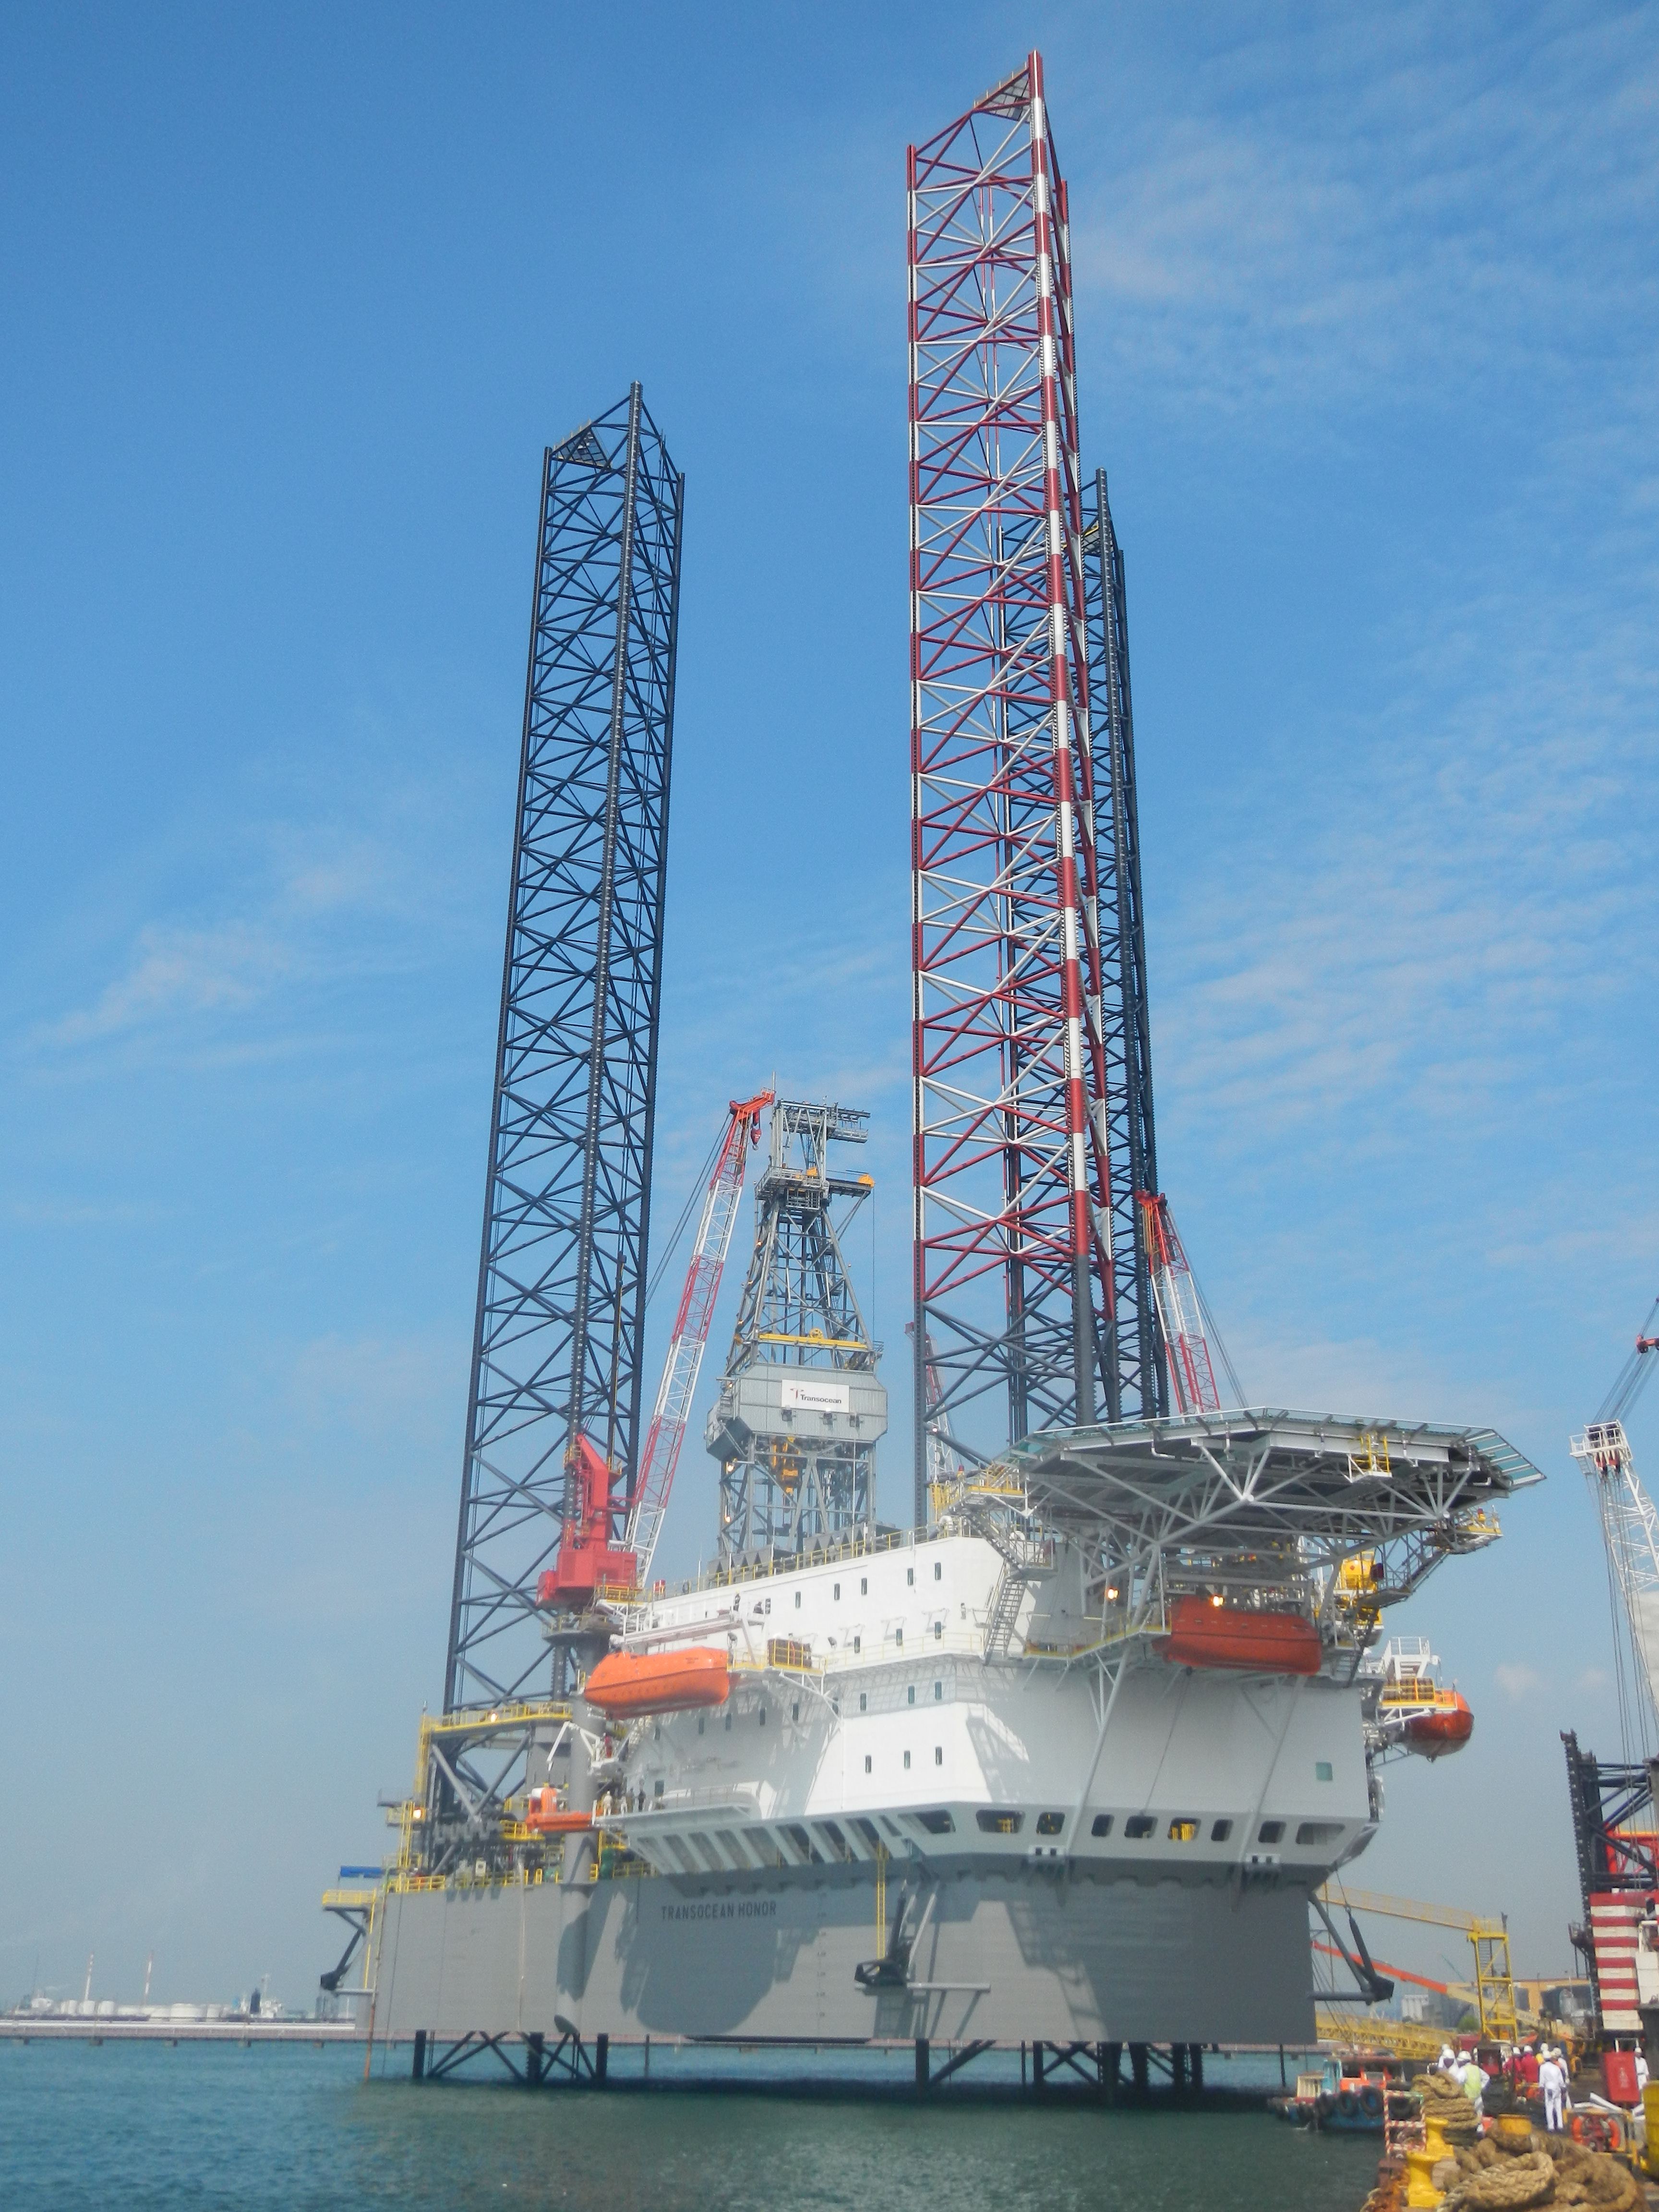 transocean-honor.jpg